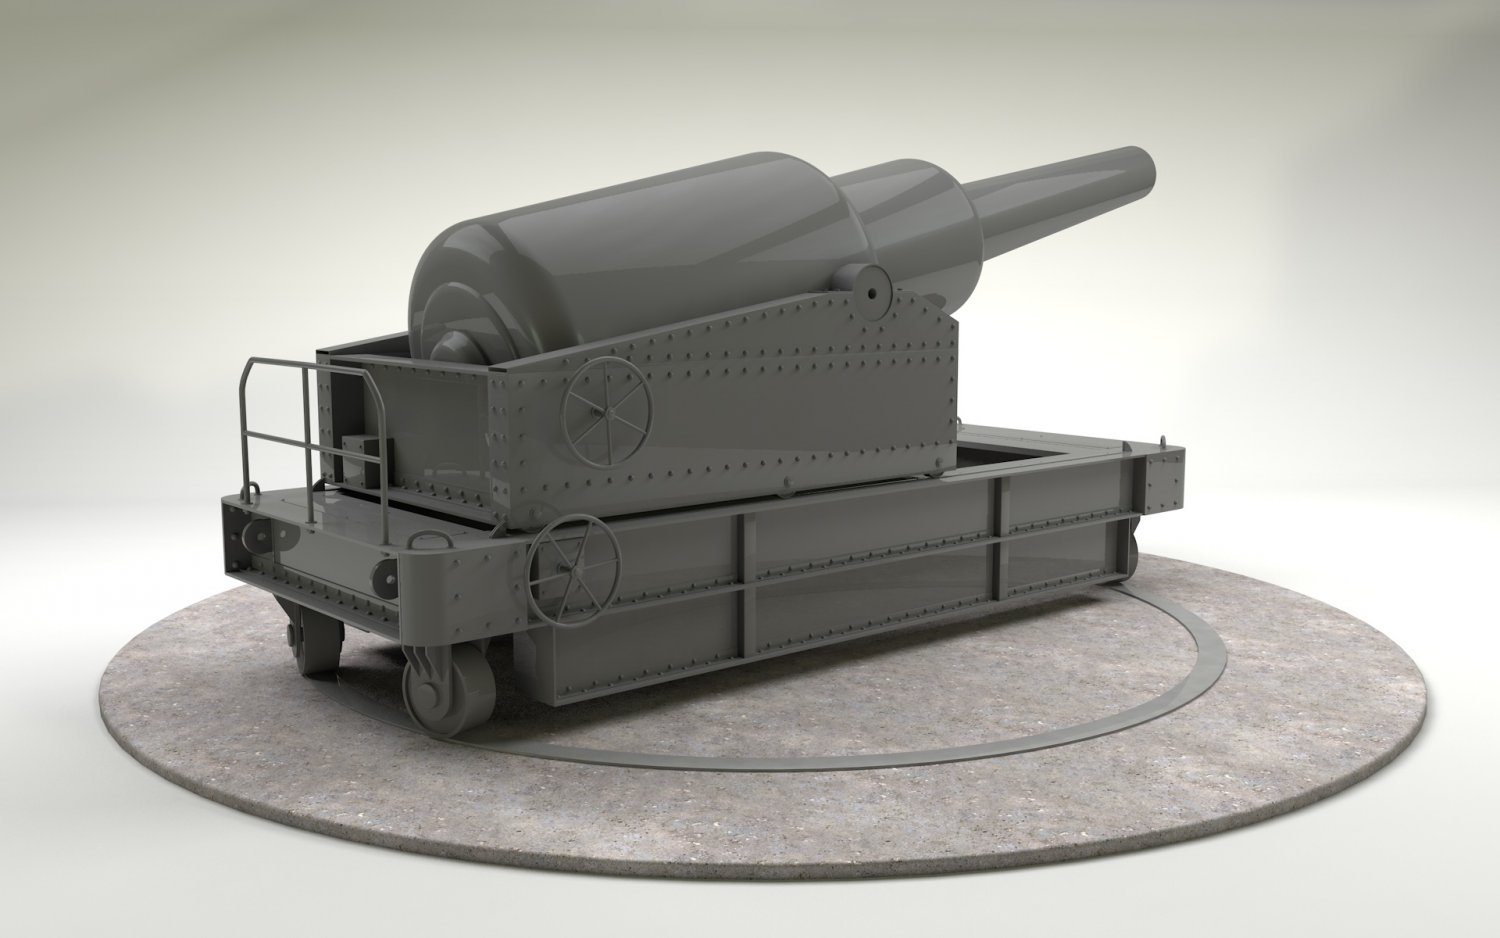 Cannon - RML 12-5 inch 38 Ton 3D model